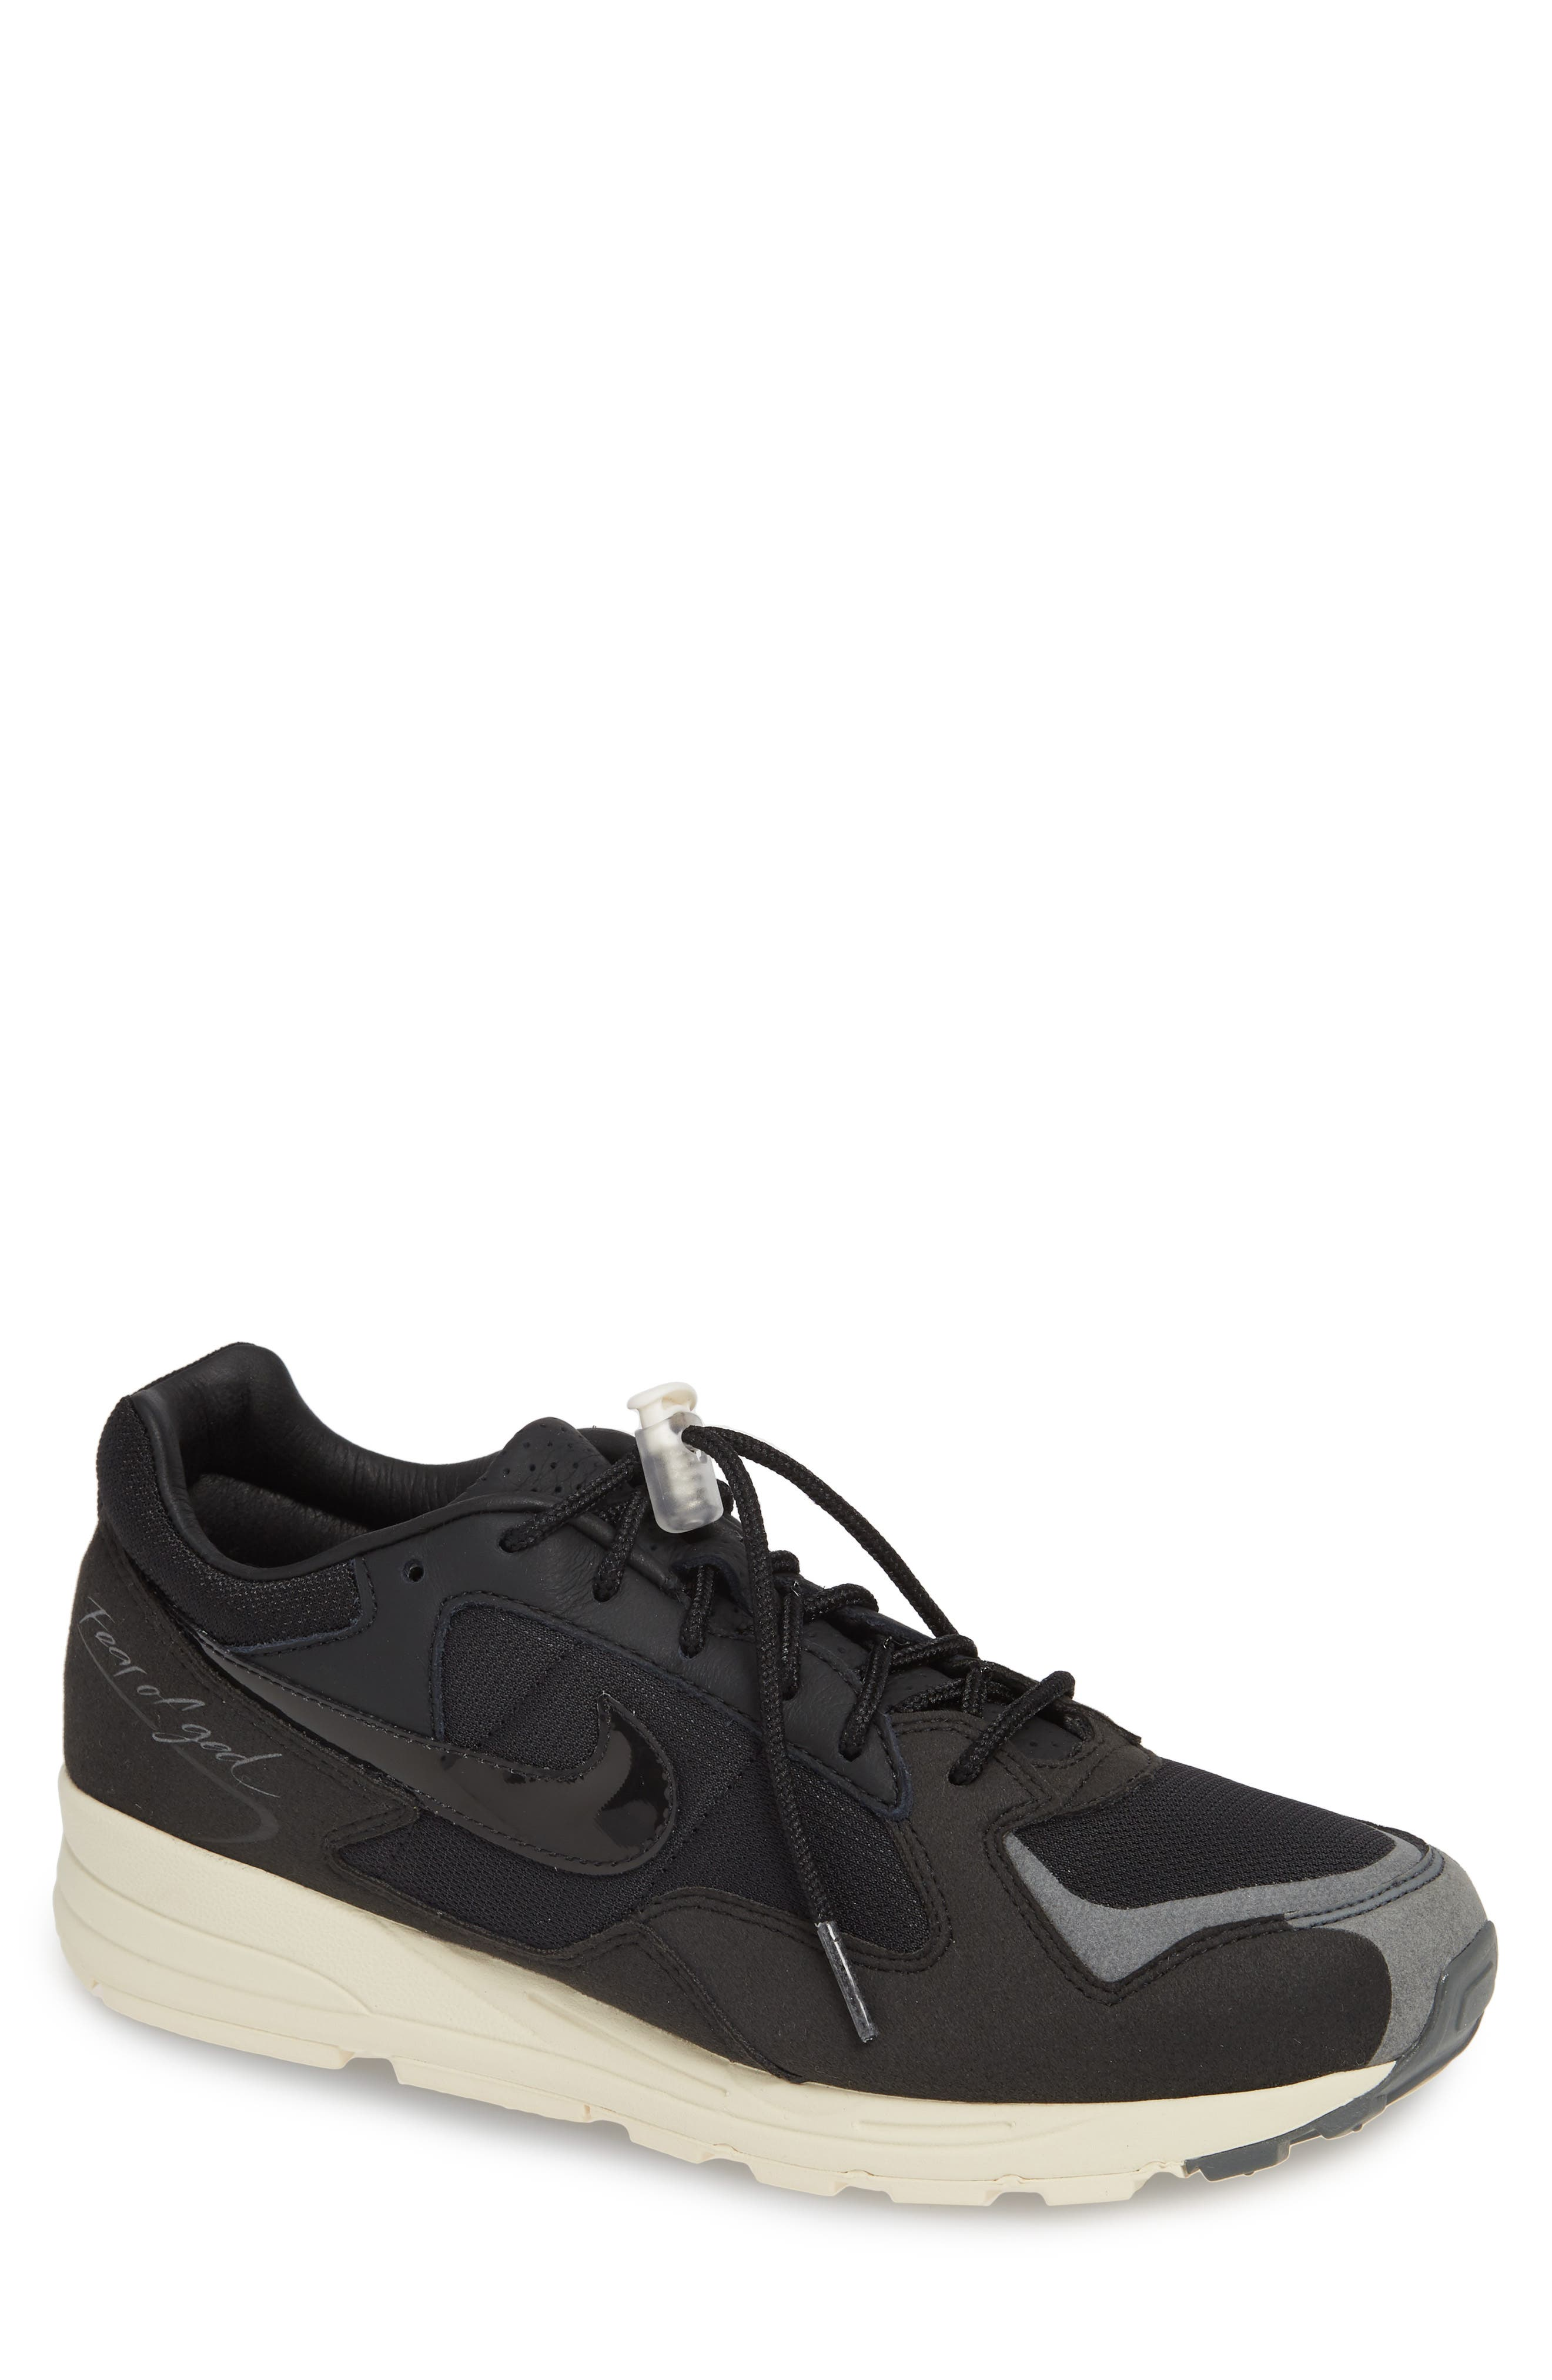 Air Skylon II/Fog Sneaker, Main, color, 001